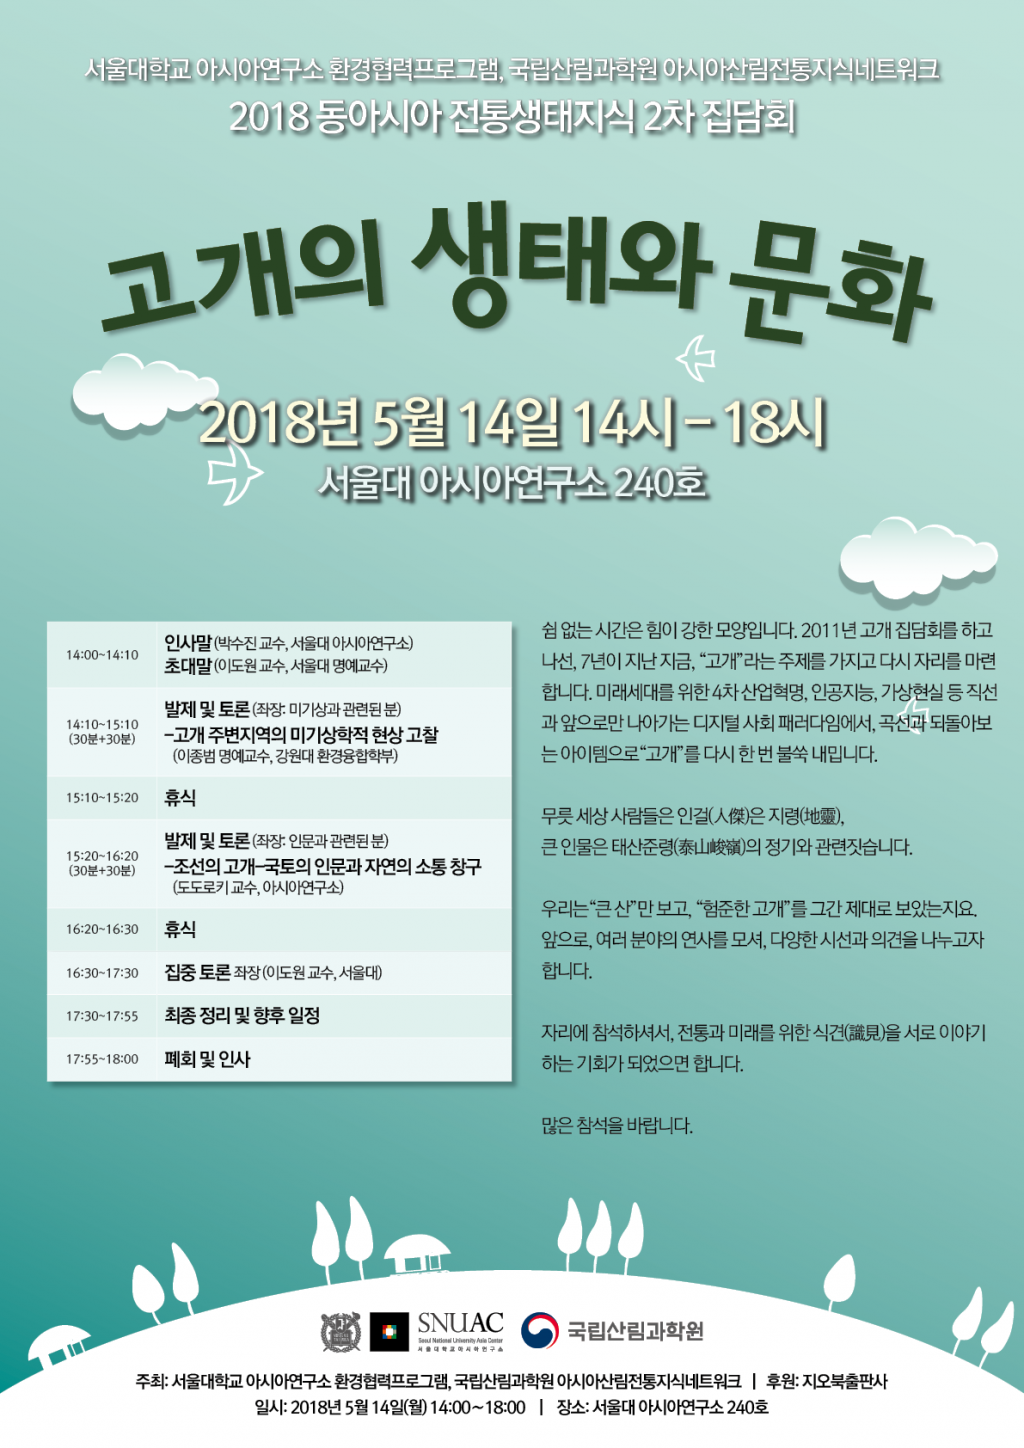 The 2nd Conference for Culture and Ecosystem in Mountain Pass